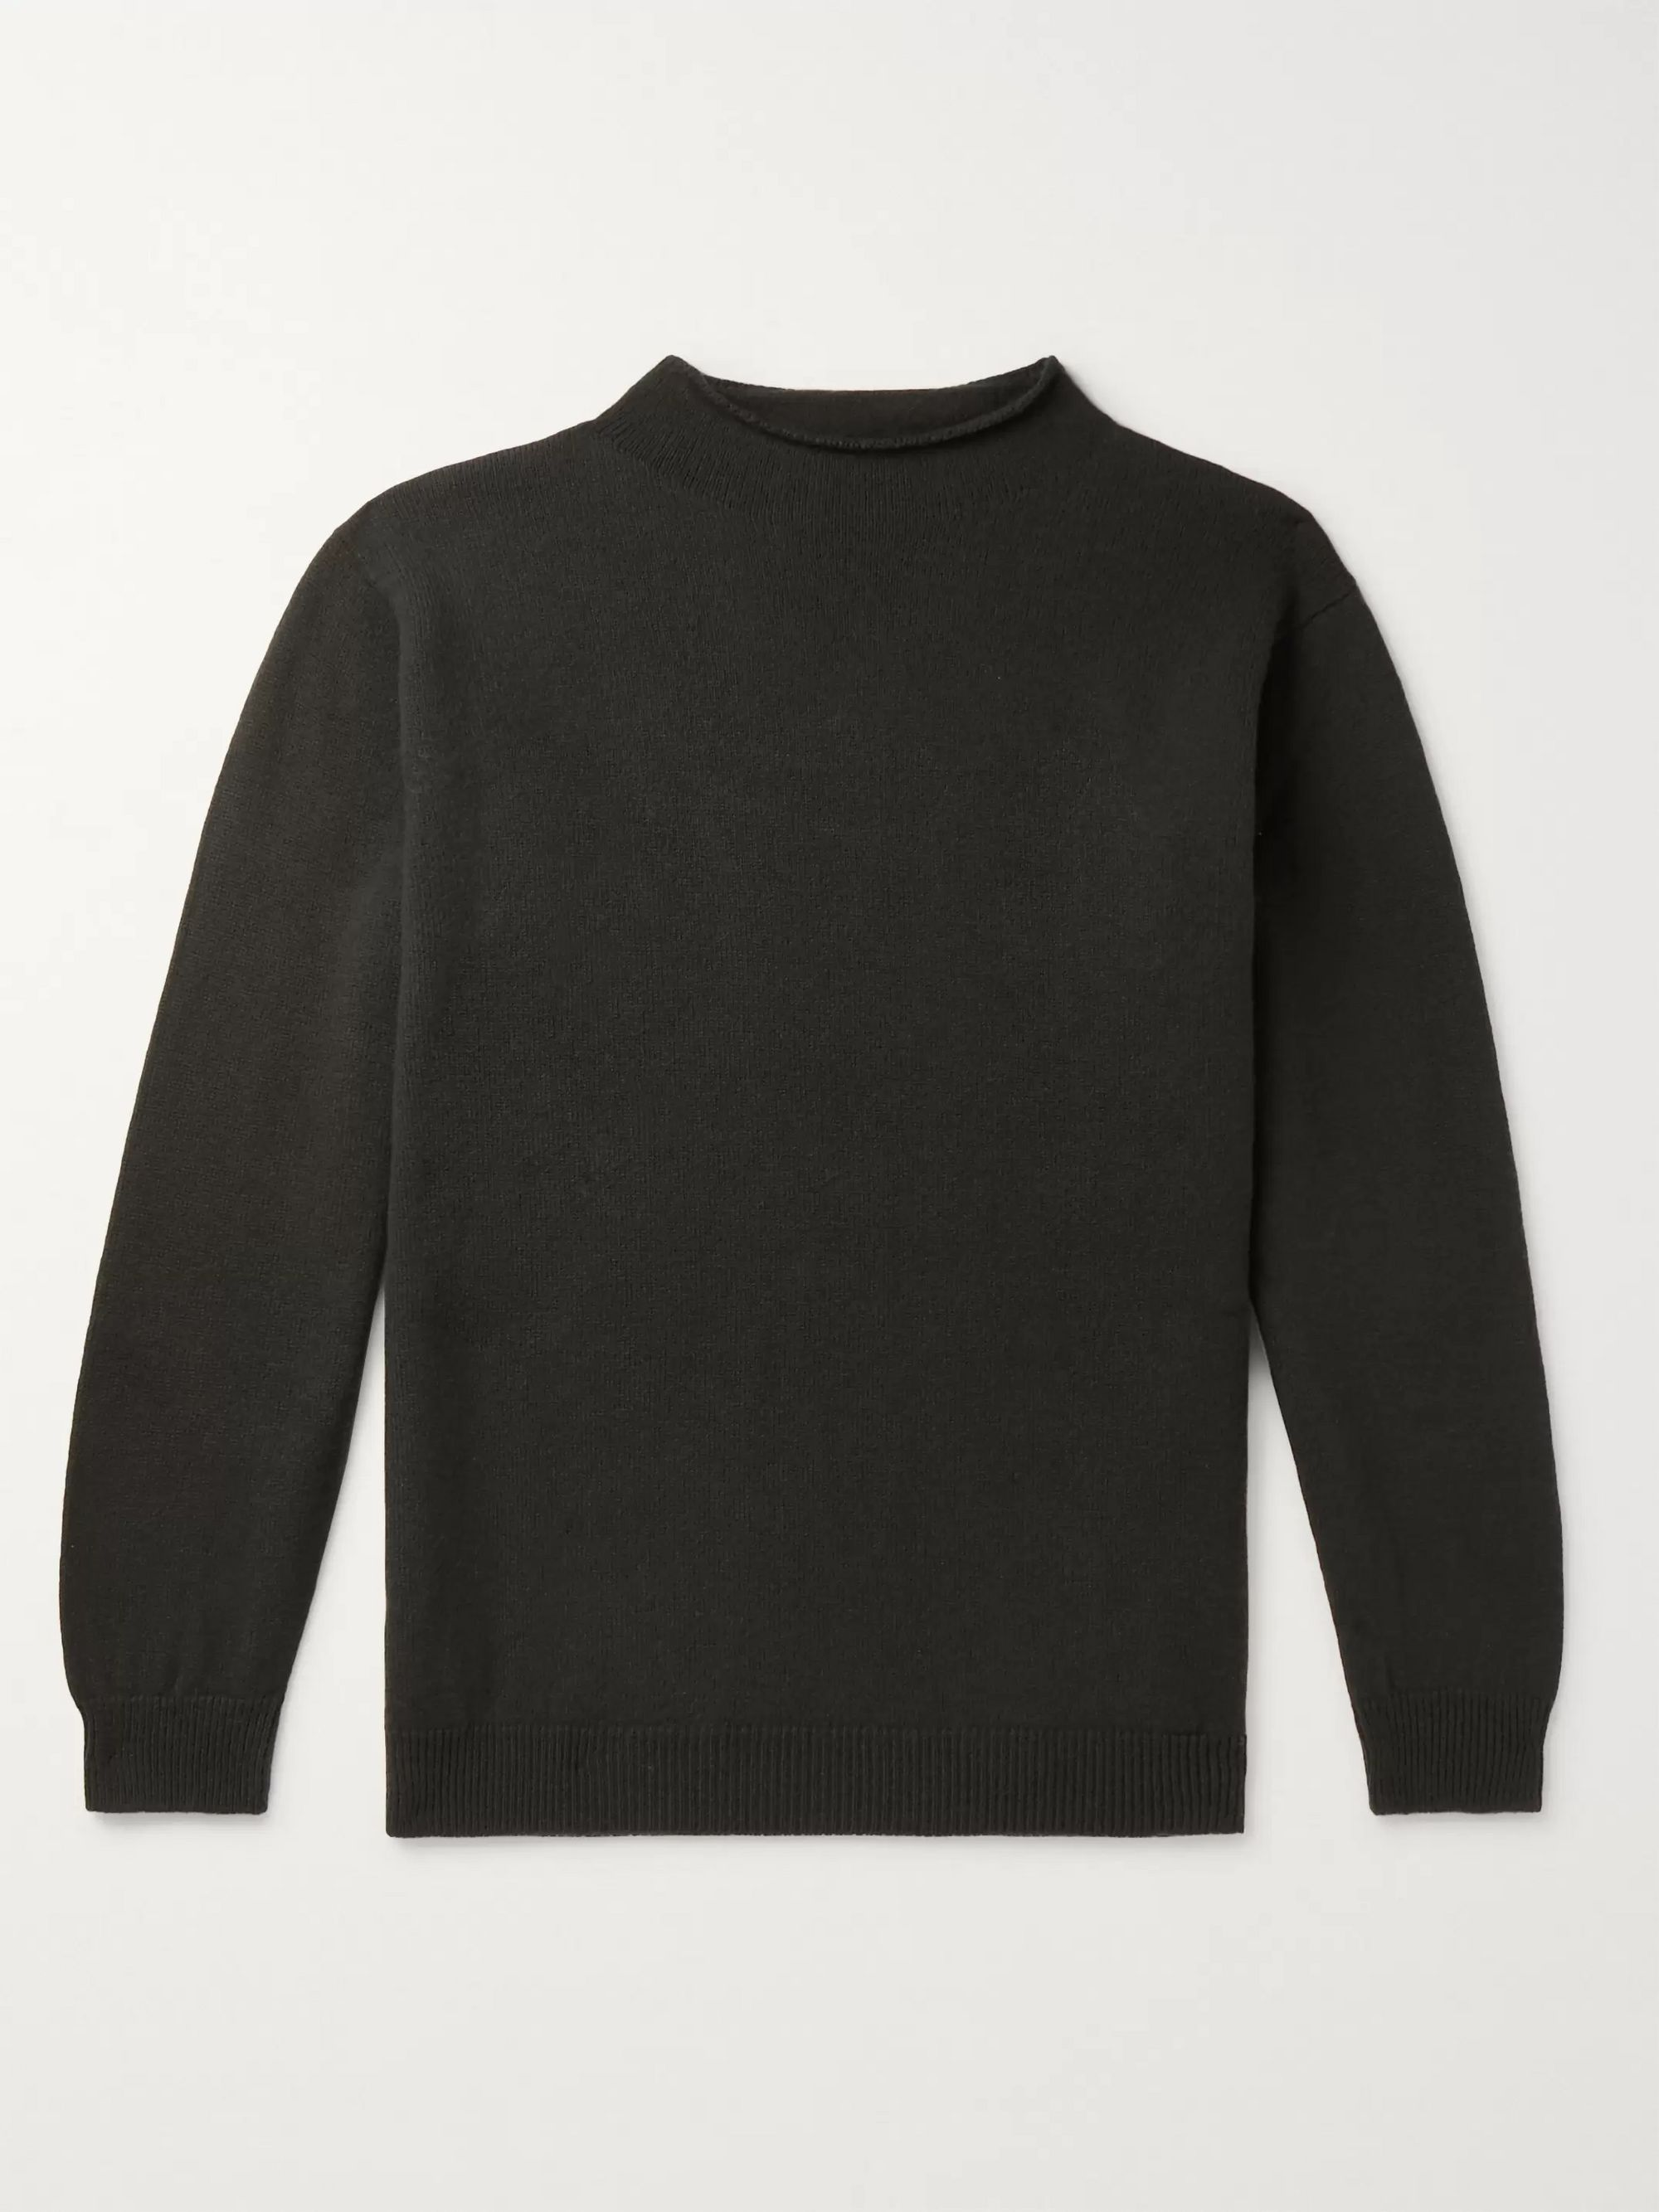 Margaret Howell Merino Wool Mock-Neck Sweater